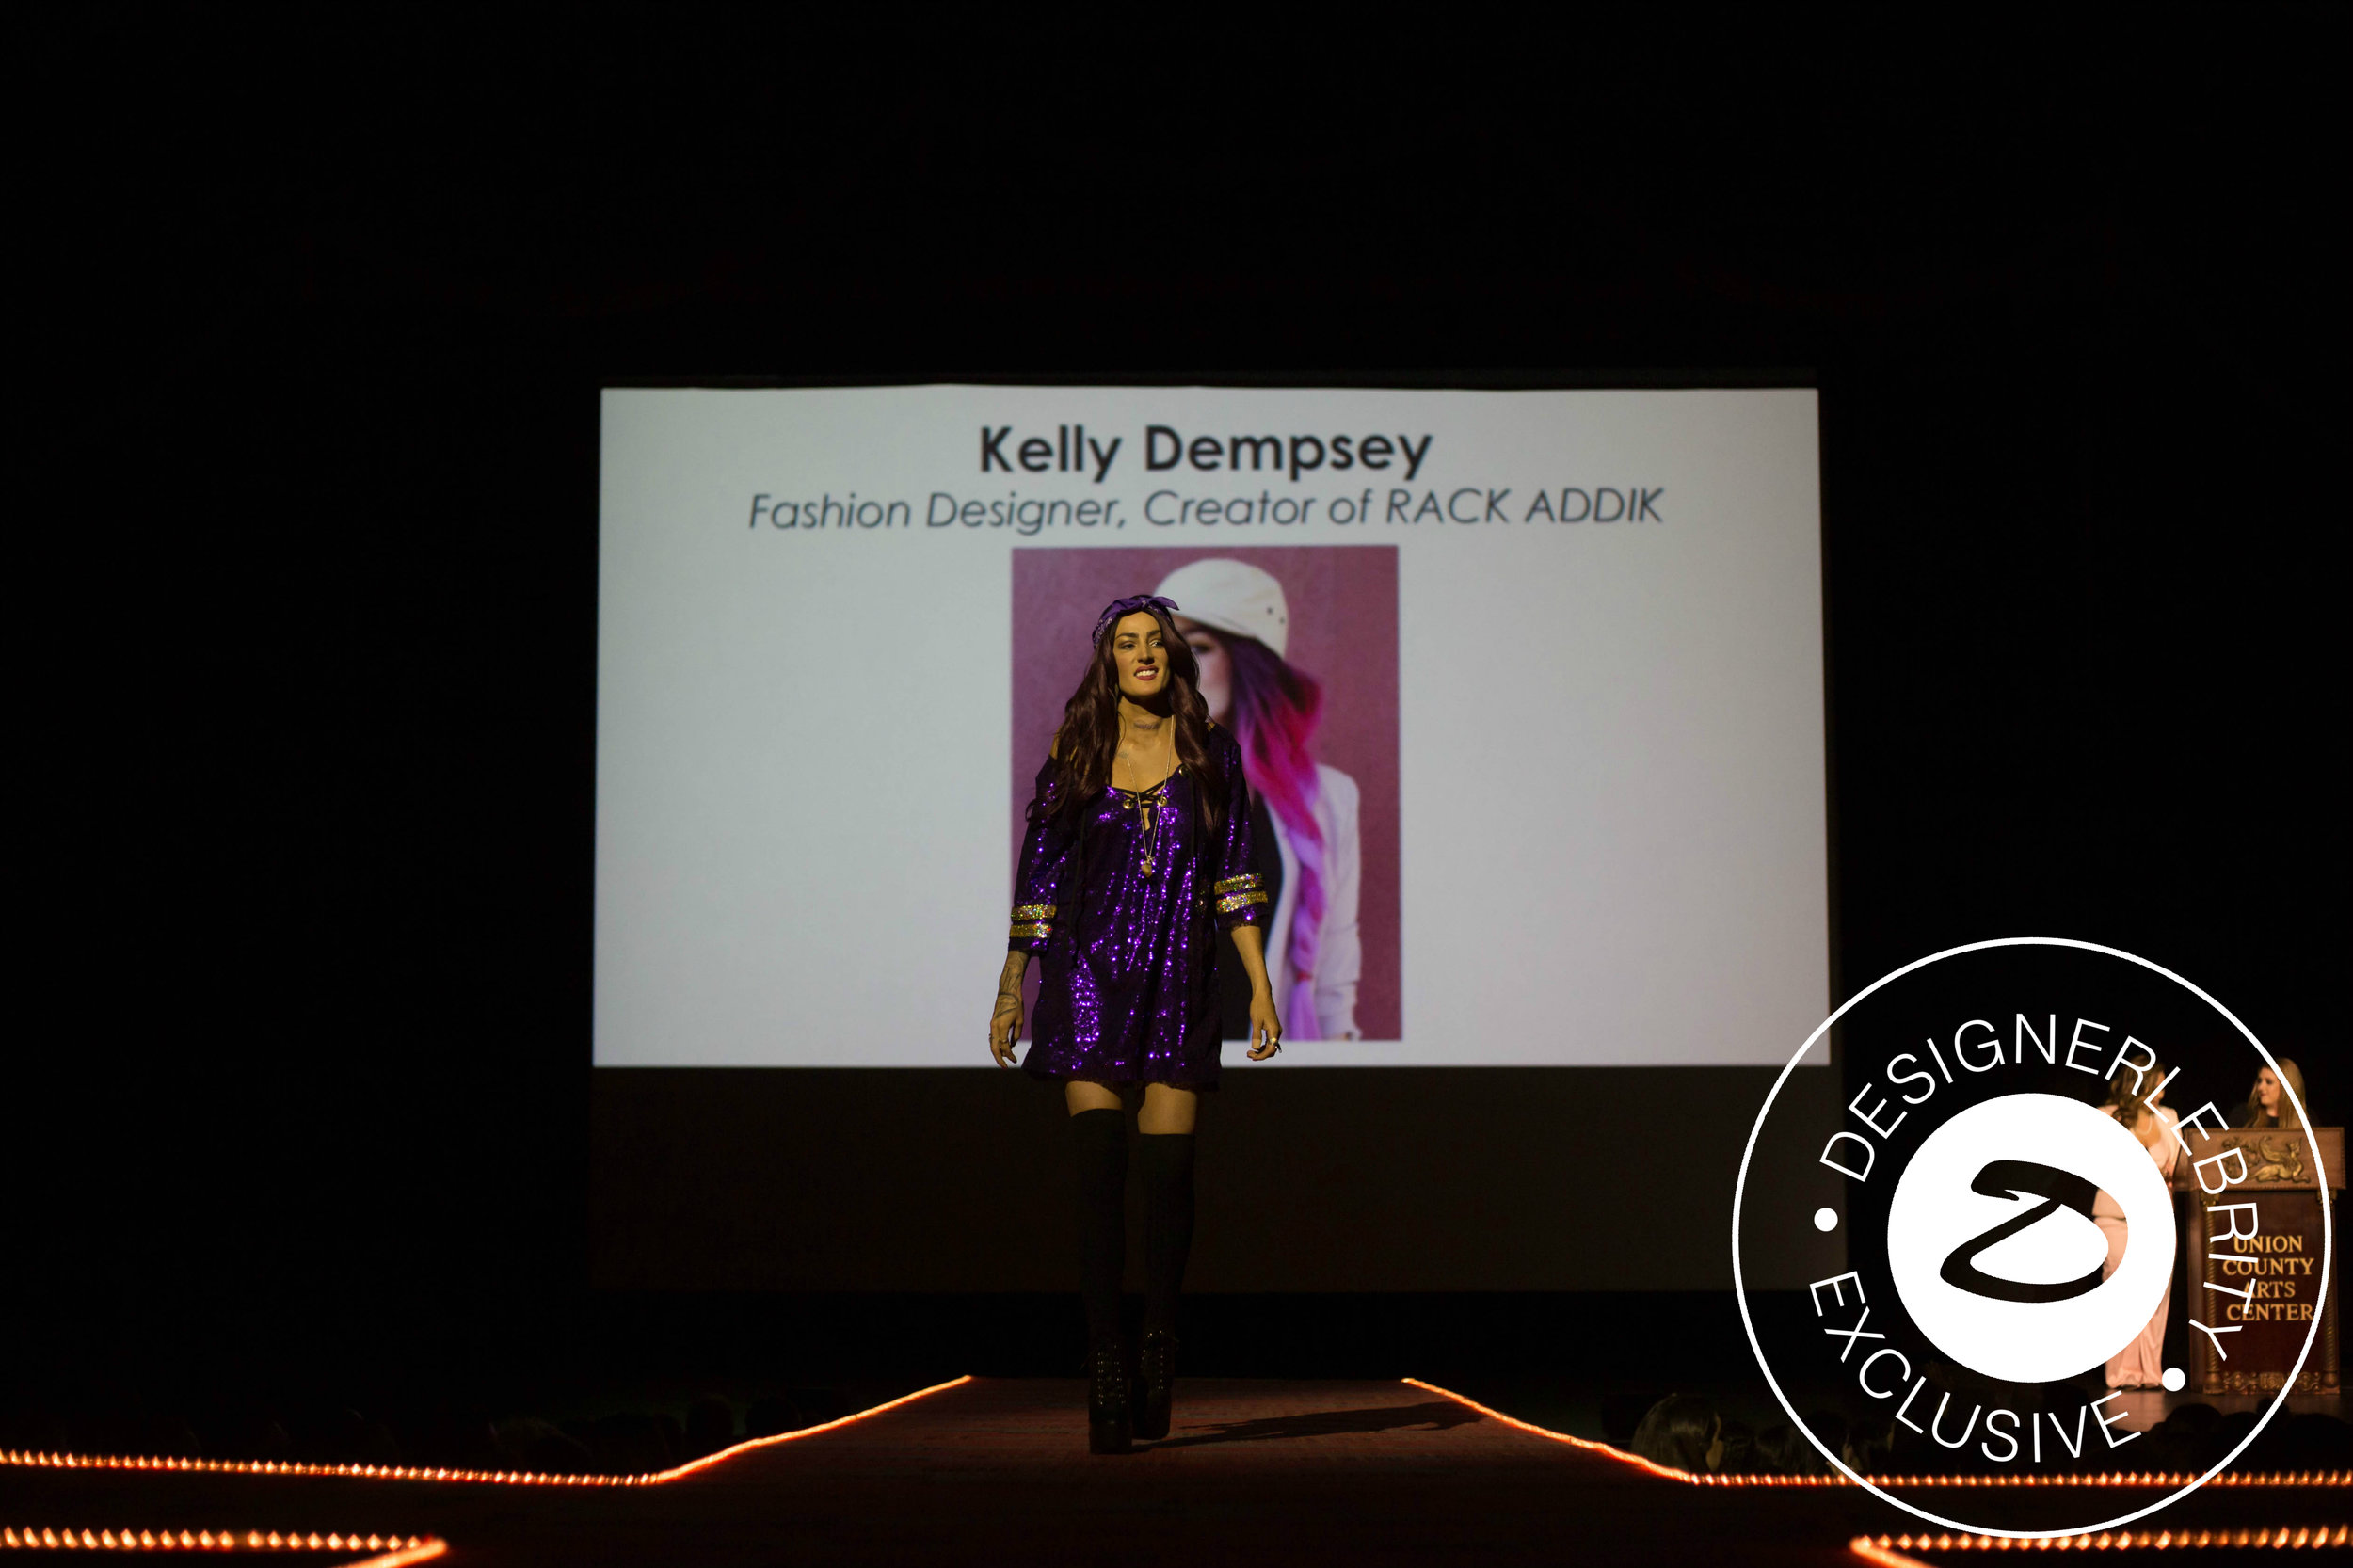 Kelly Dempsey - Fashion Designer, Creator of Rack ADDIK(Project Runway Runner-Up Season 14)Judging: Runway to Street Chic